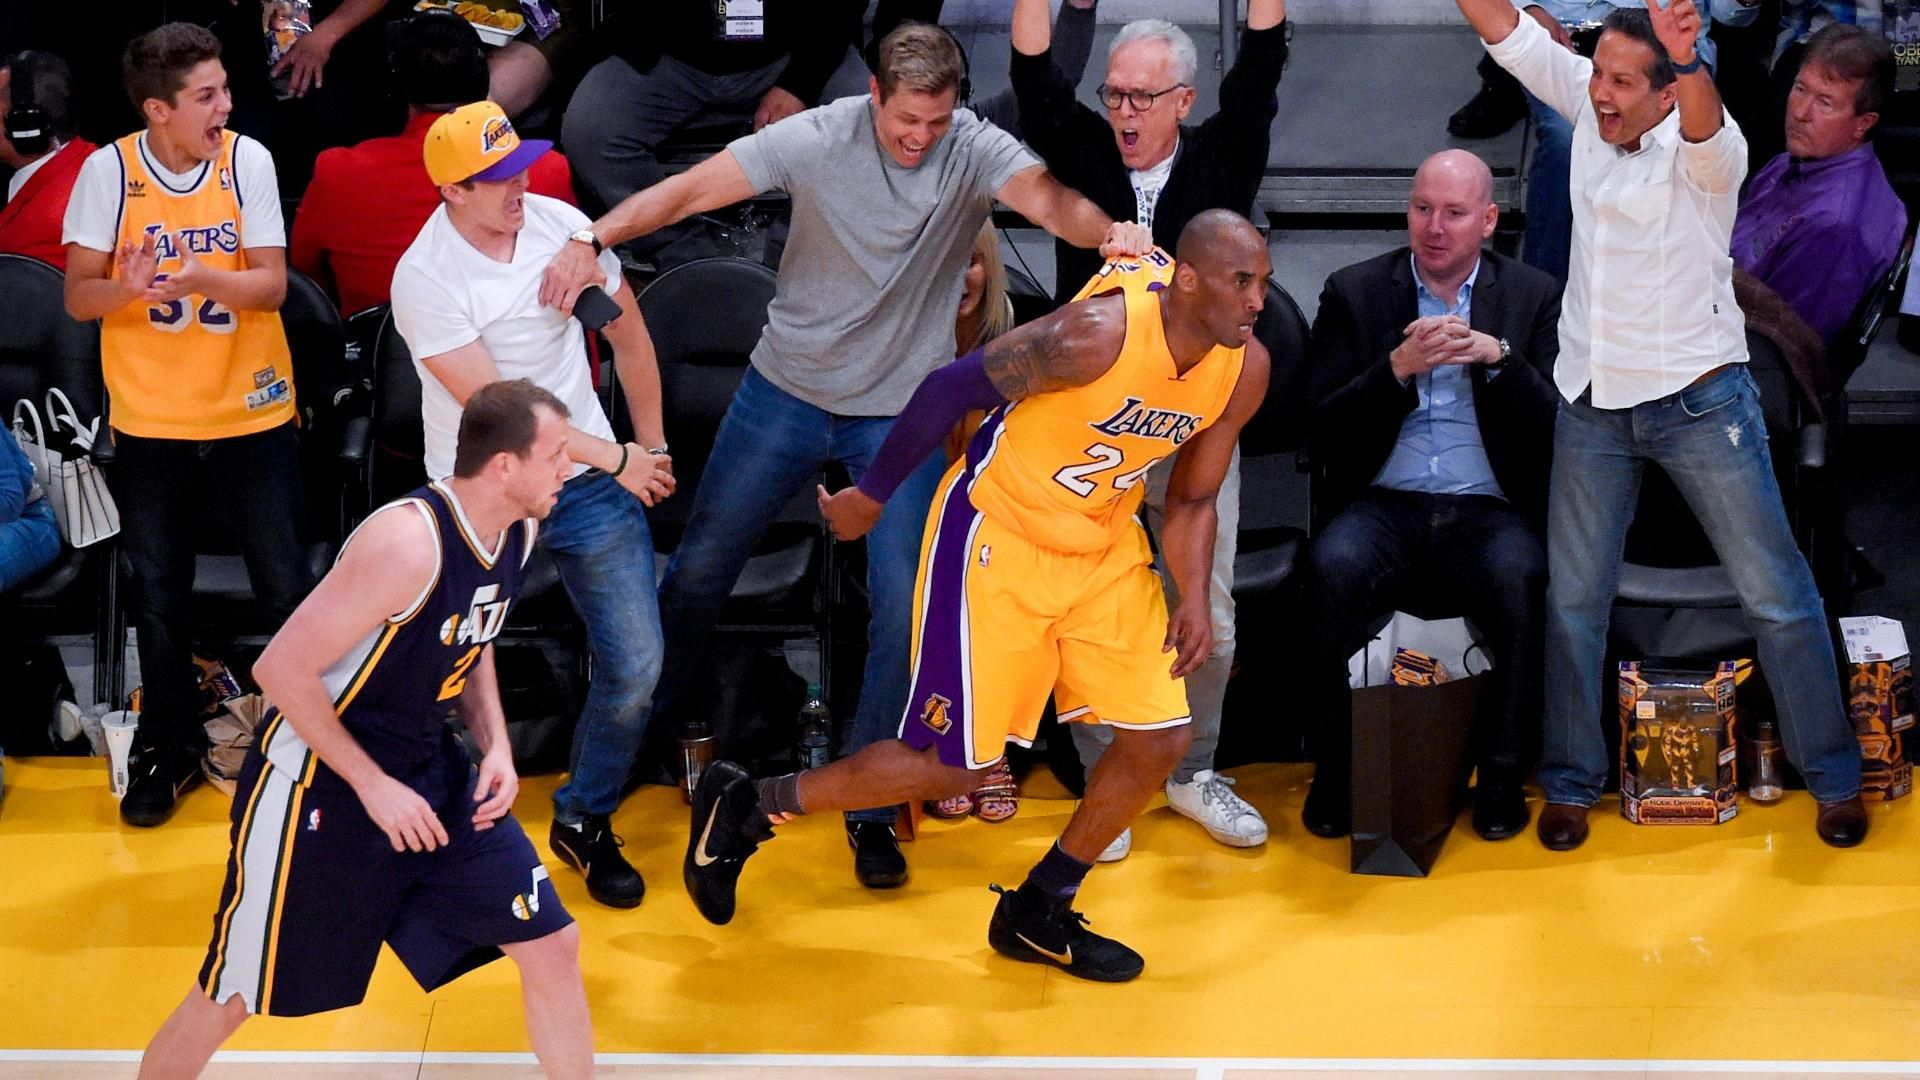 Kobe draining 3 much to the crowd's delight